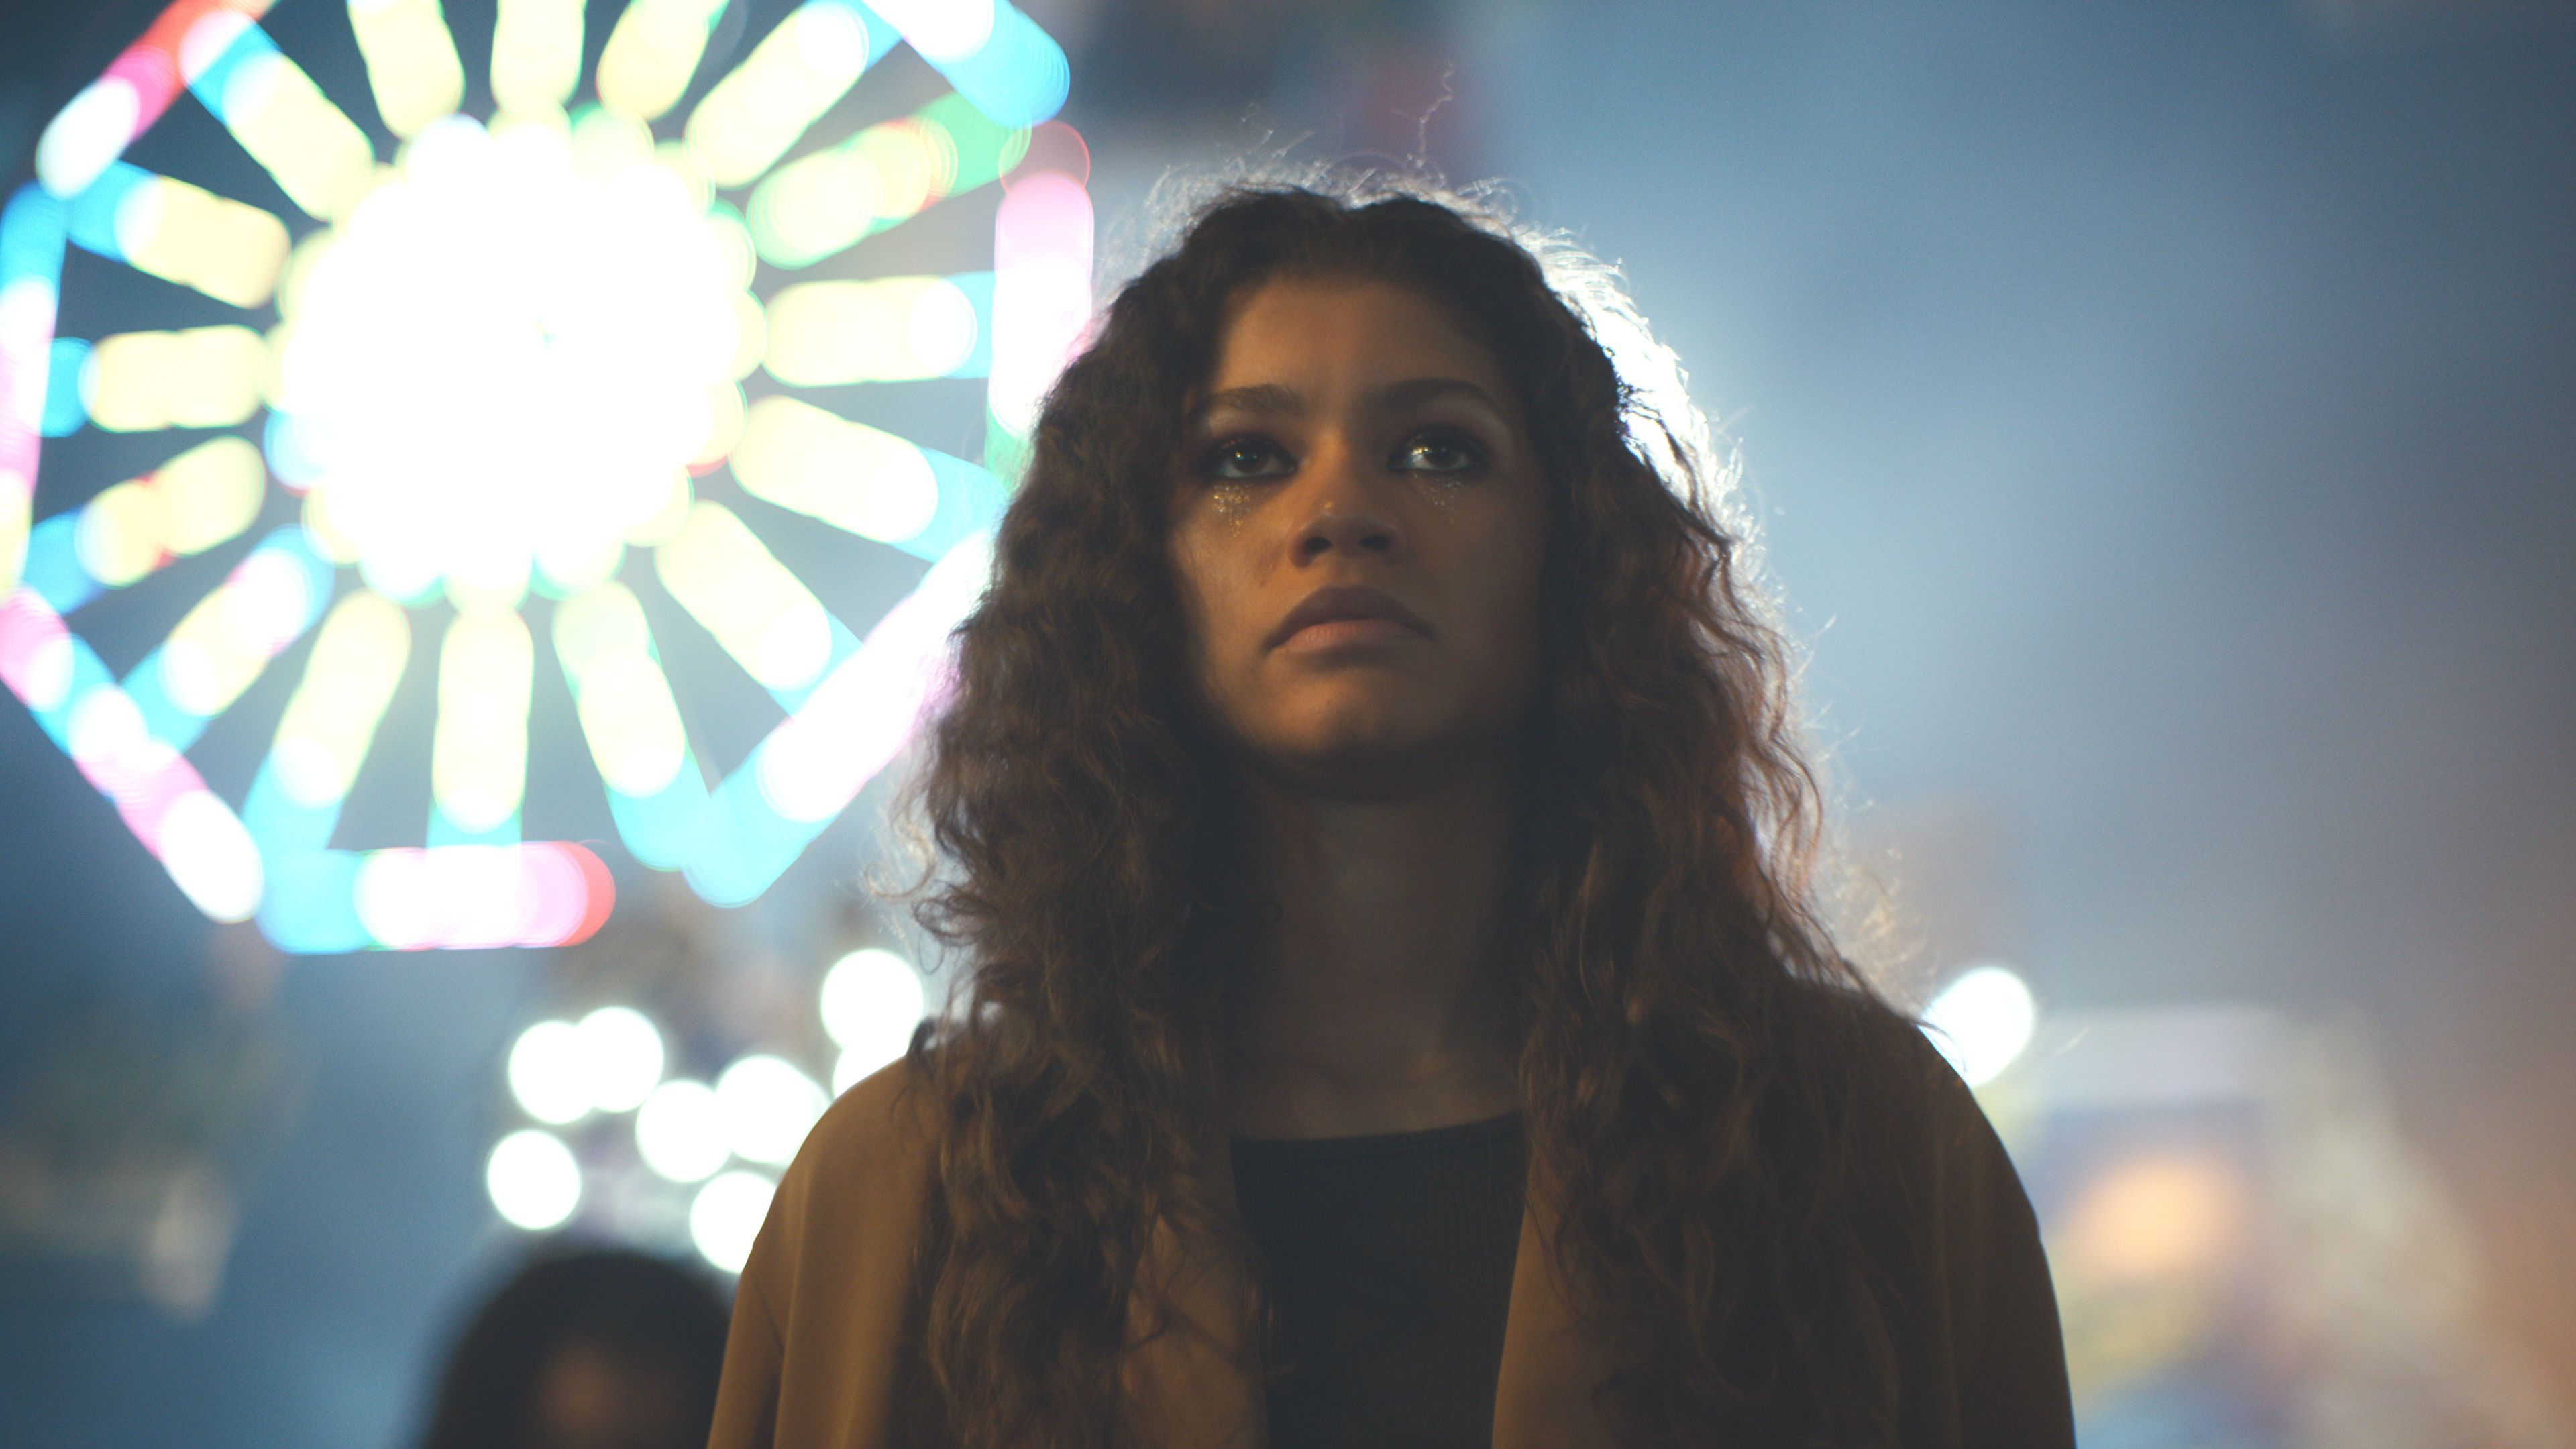 Euphoria season 2 date, cast, trailer, release date and more